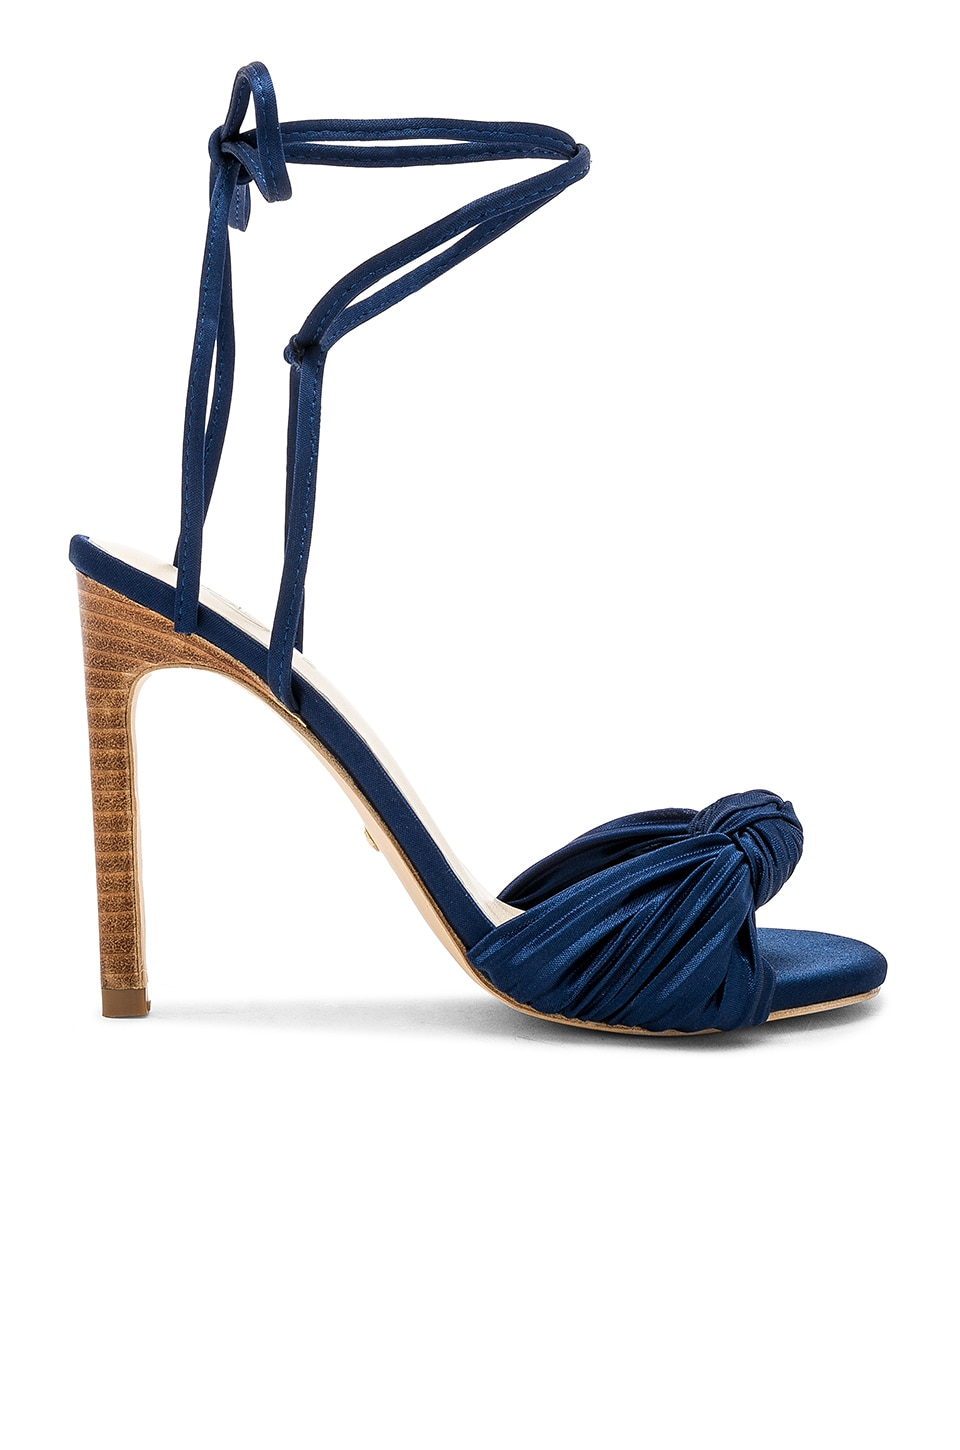 RAYE x House Of Harlow 1960 Zoey Heel in Navy